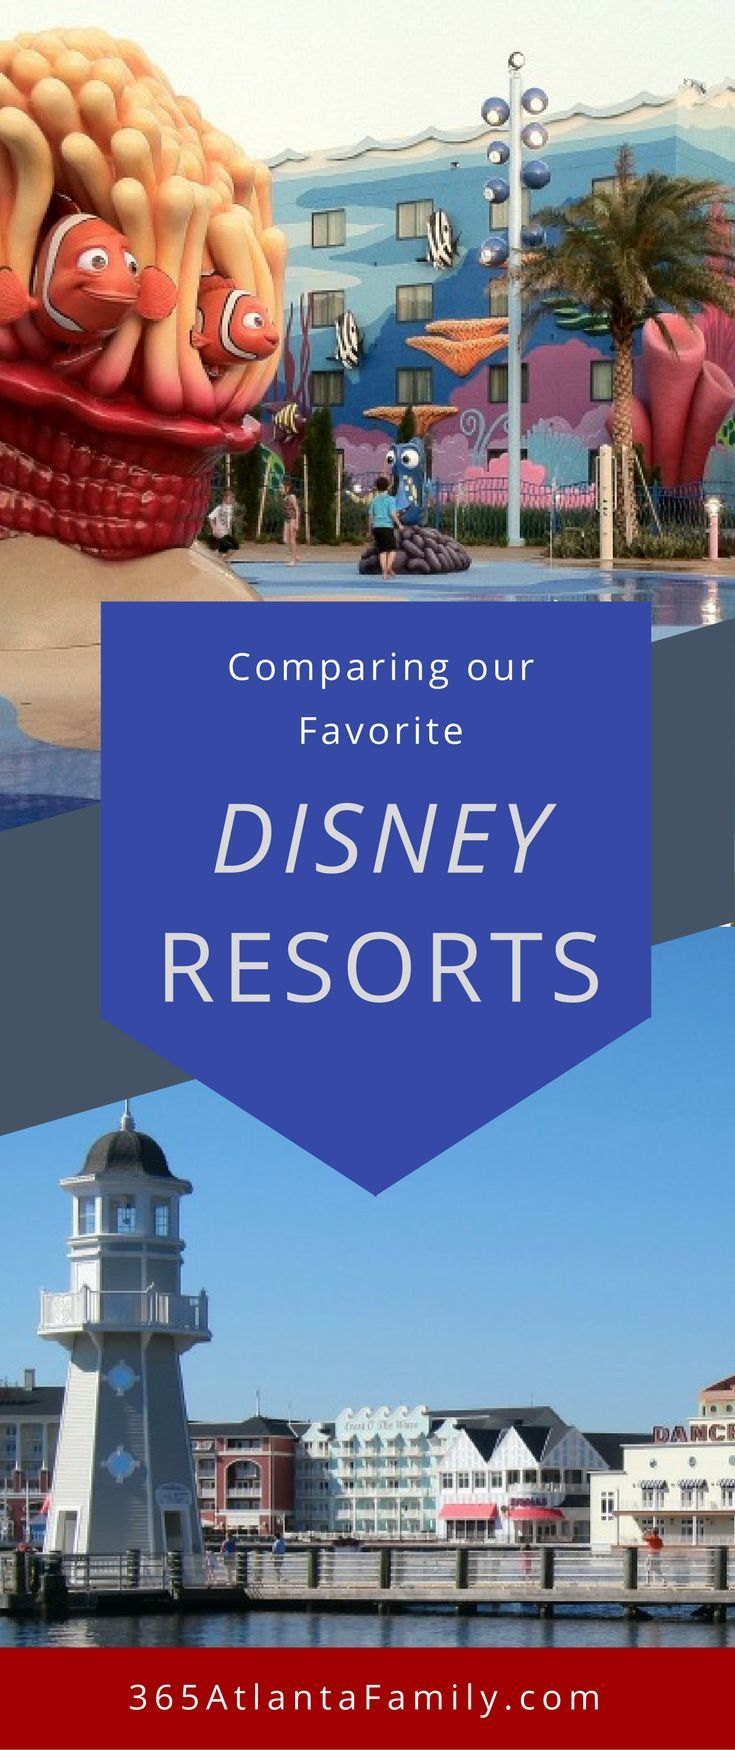 Staying at one of the disney resorts is supercalifragilisticexpialidocious. Why? Because of the extras you get on property. Here's are the special extras we've found.